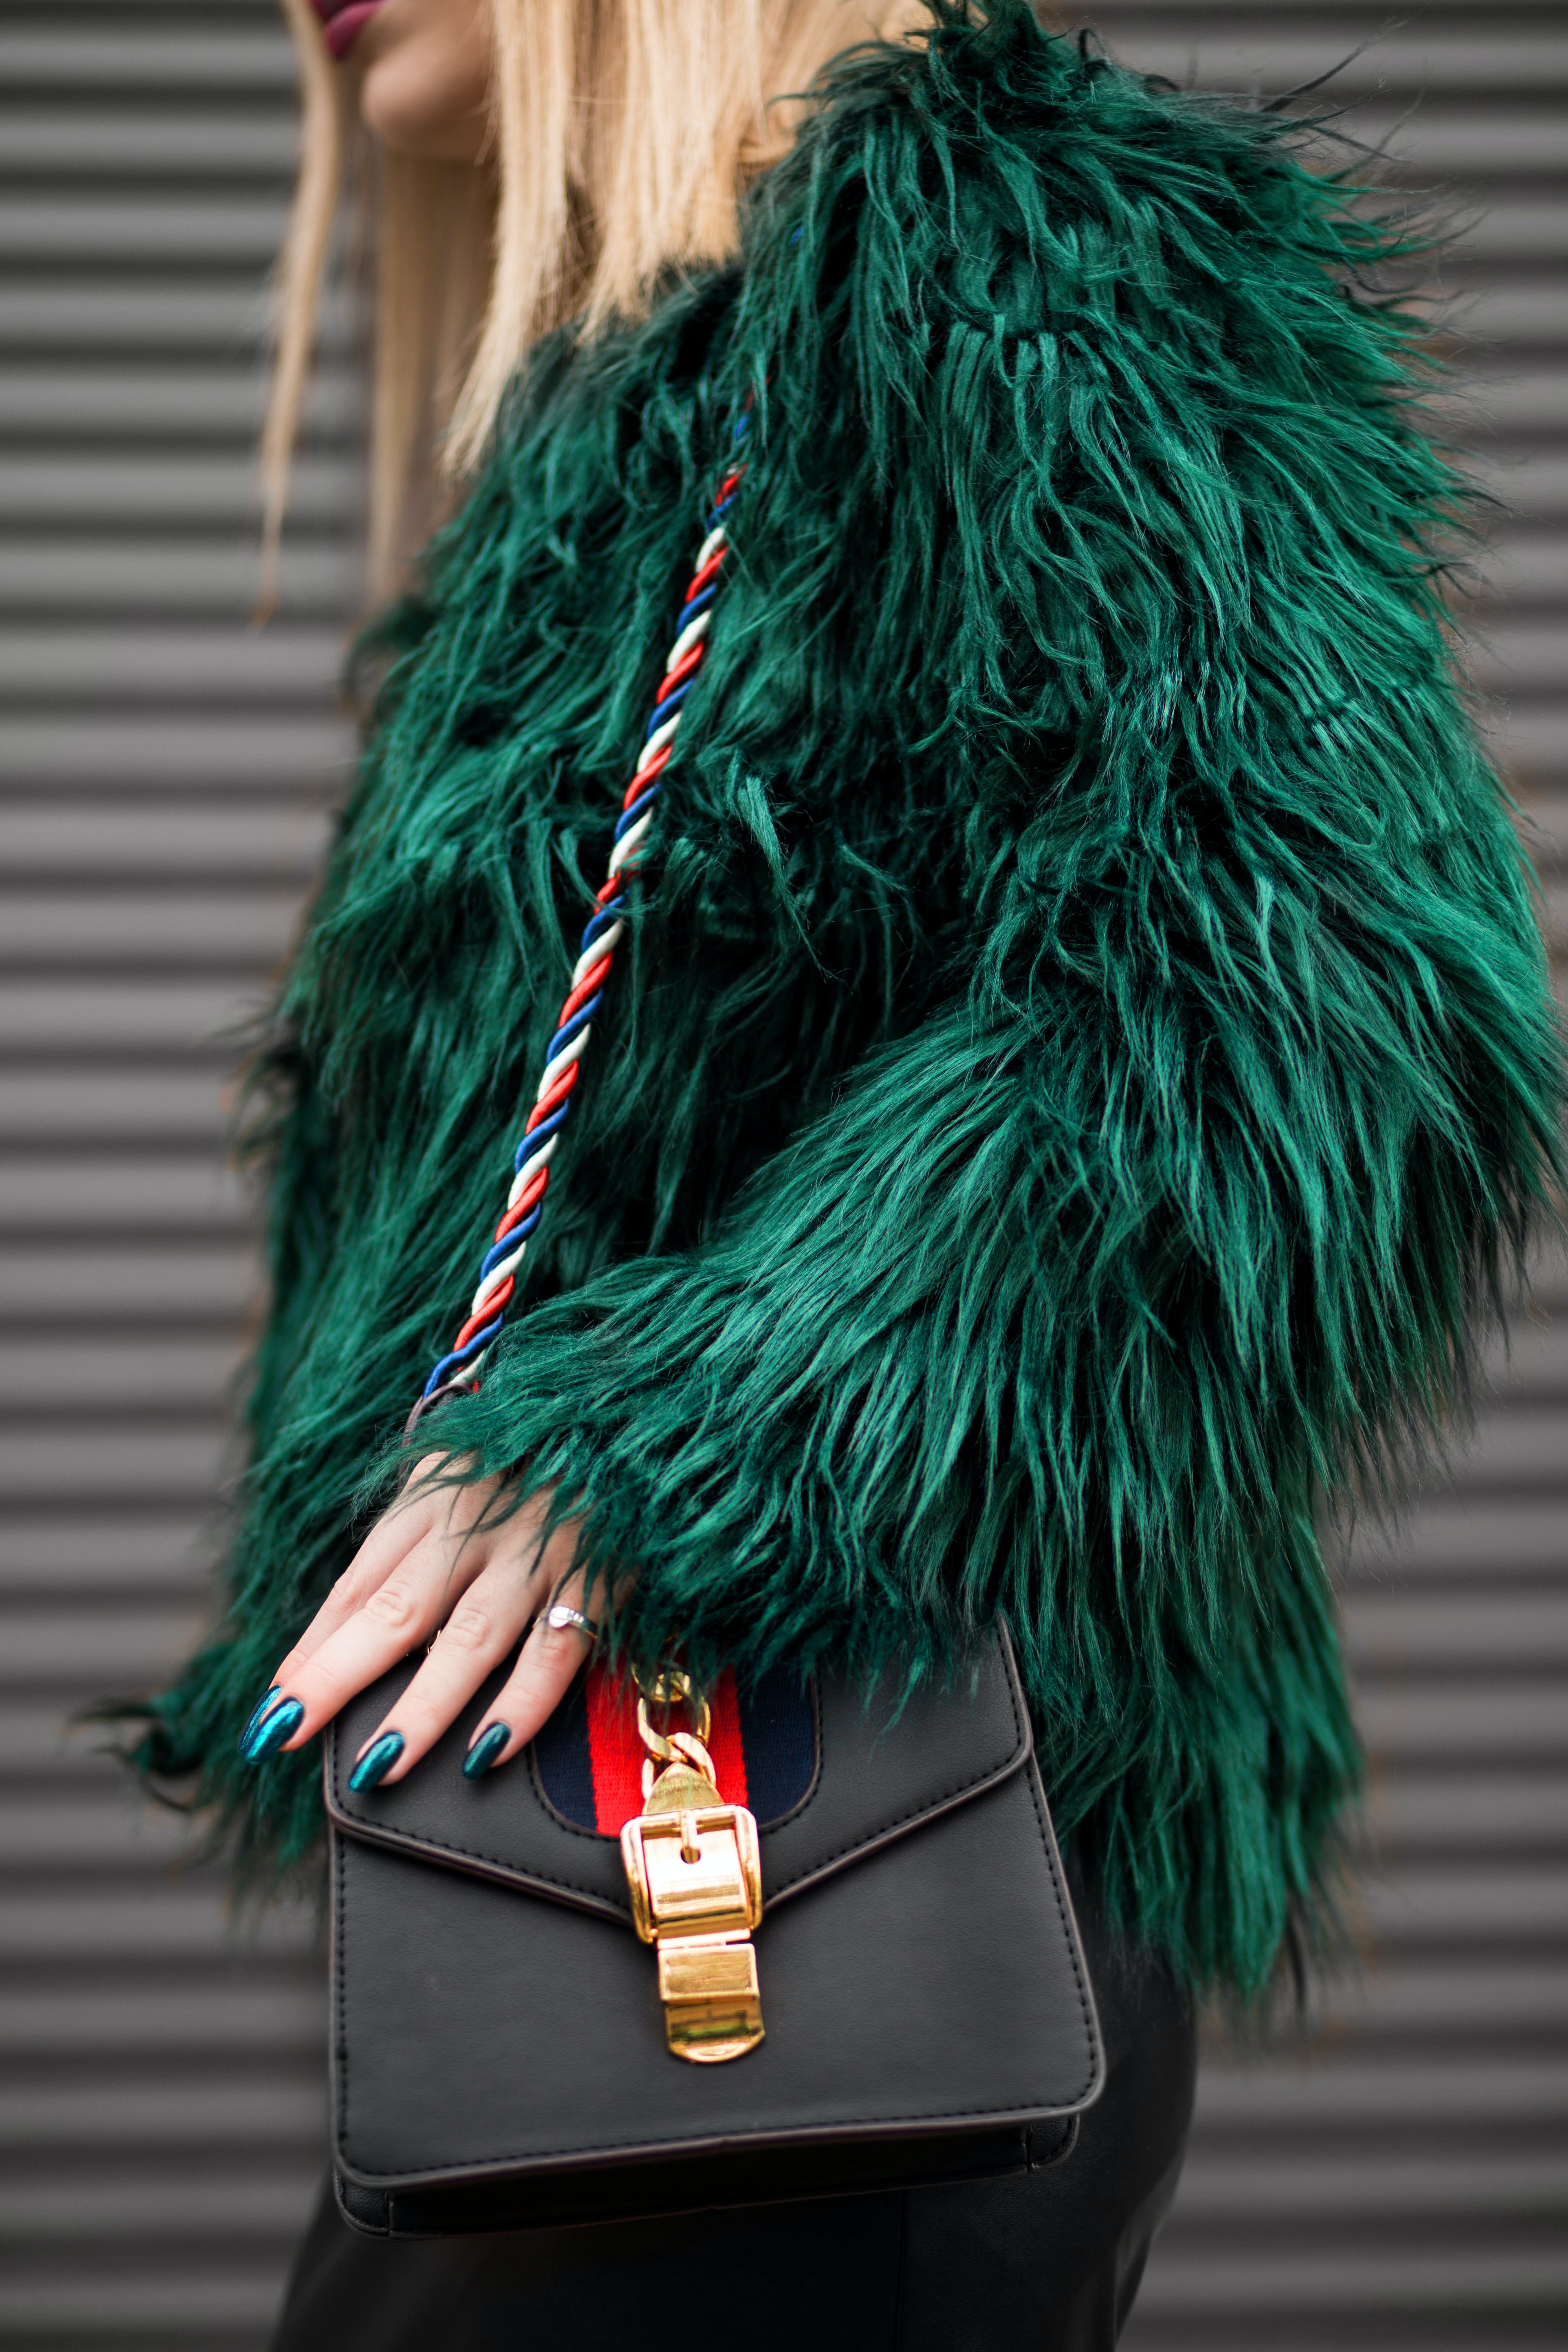 Woman Wearing Green Fur Jacket